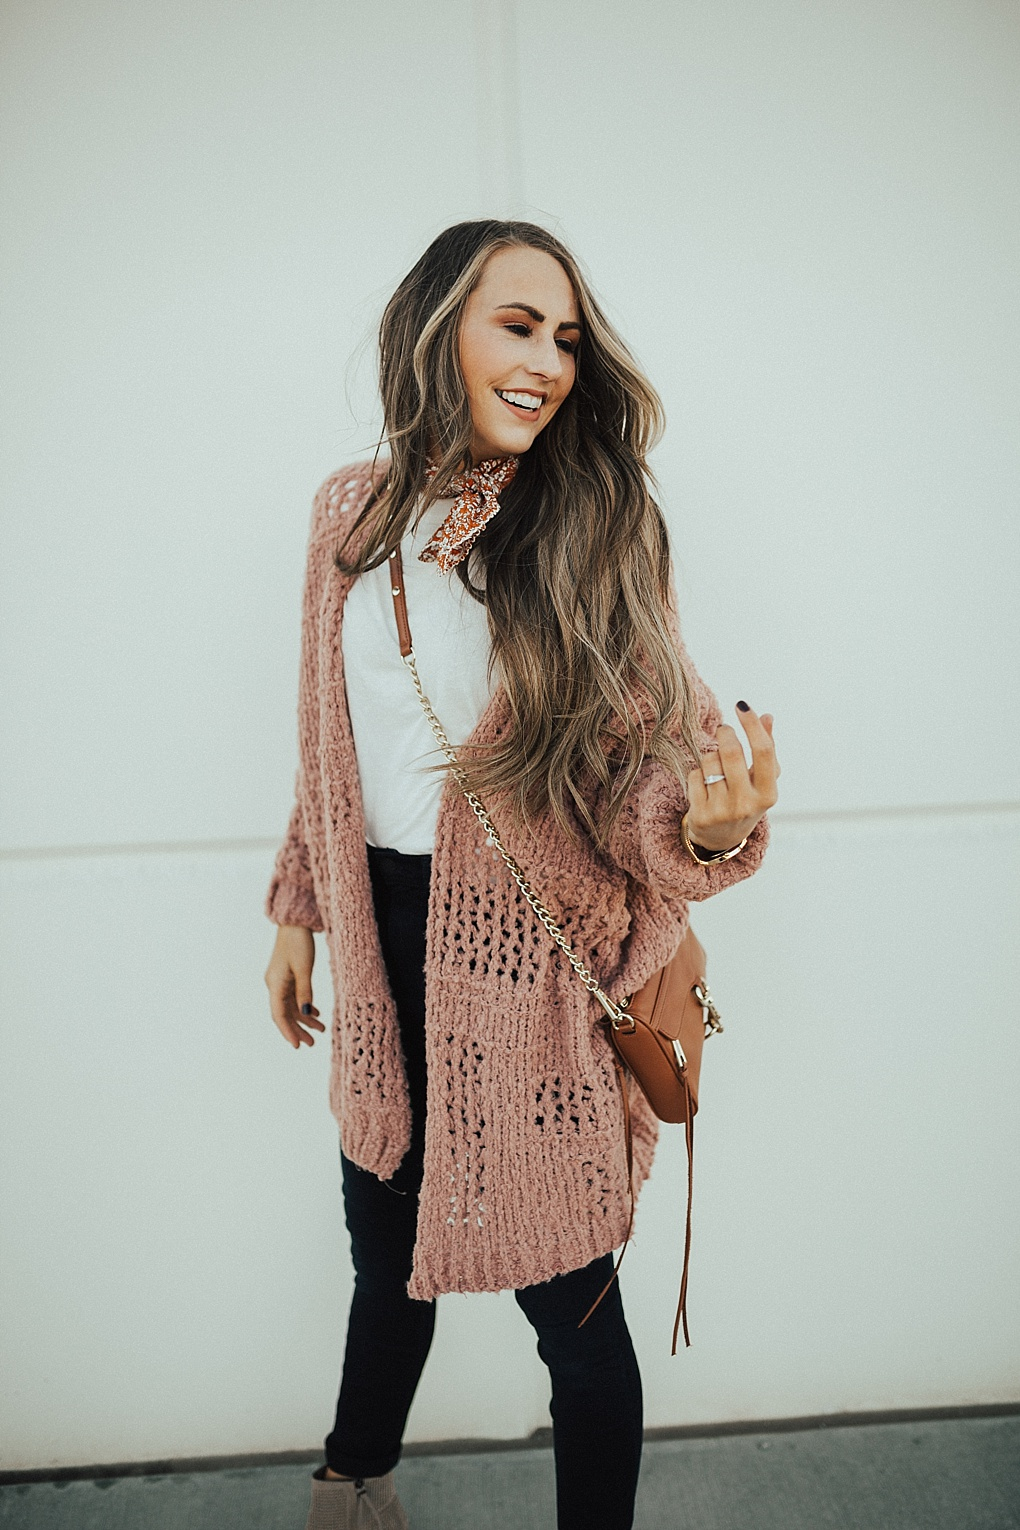 The Sale of the Season... Shopbop Sale Details by Utah fashion blogger Dani Marie